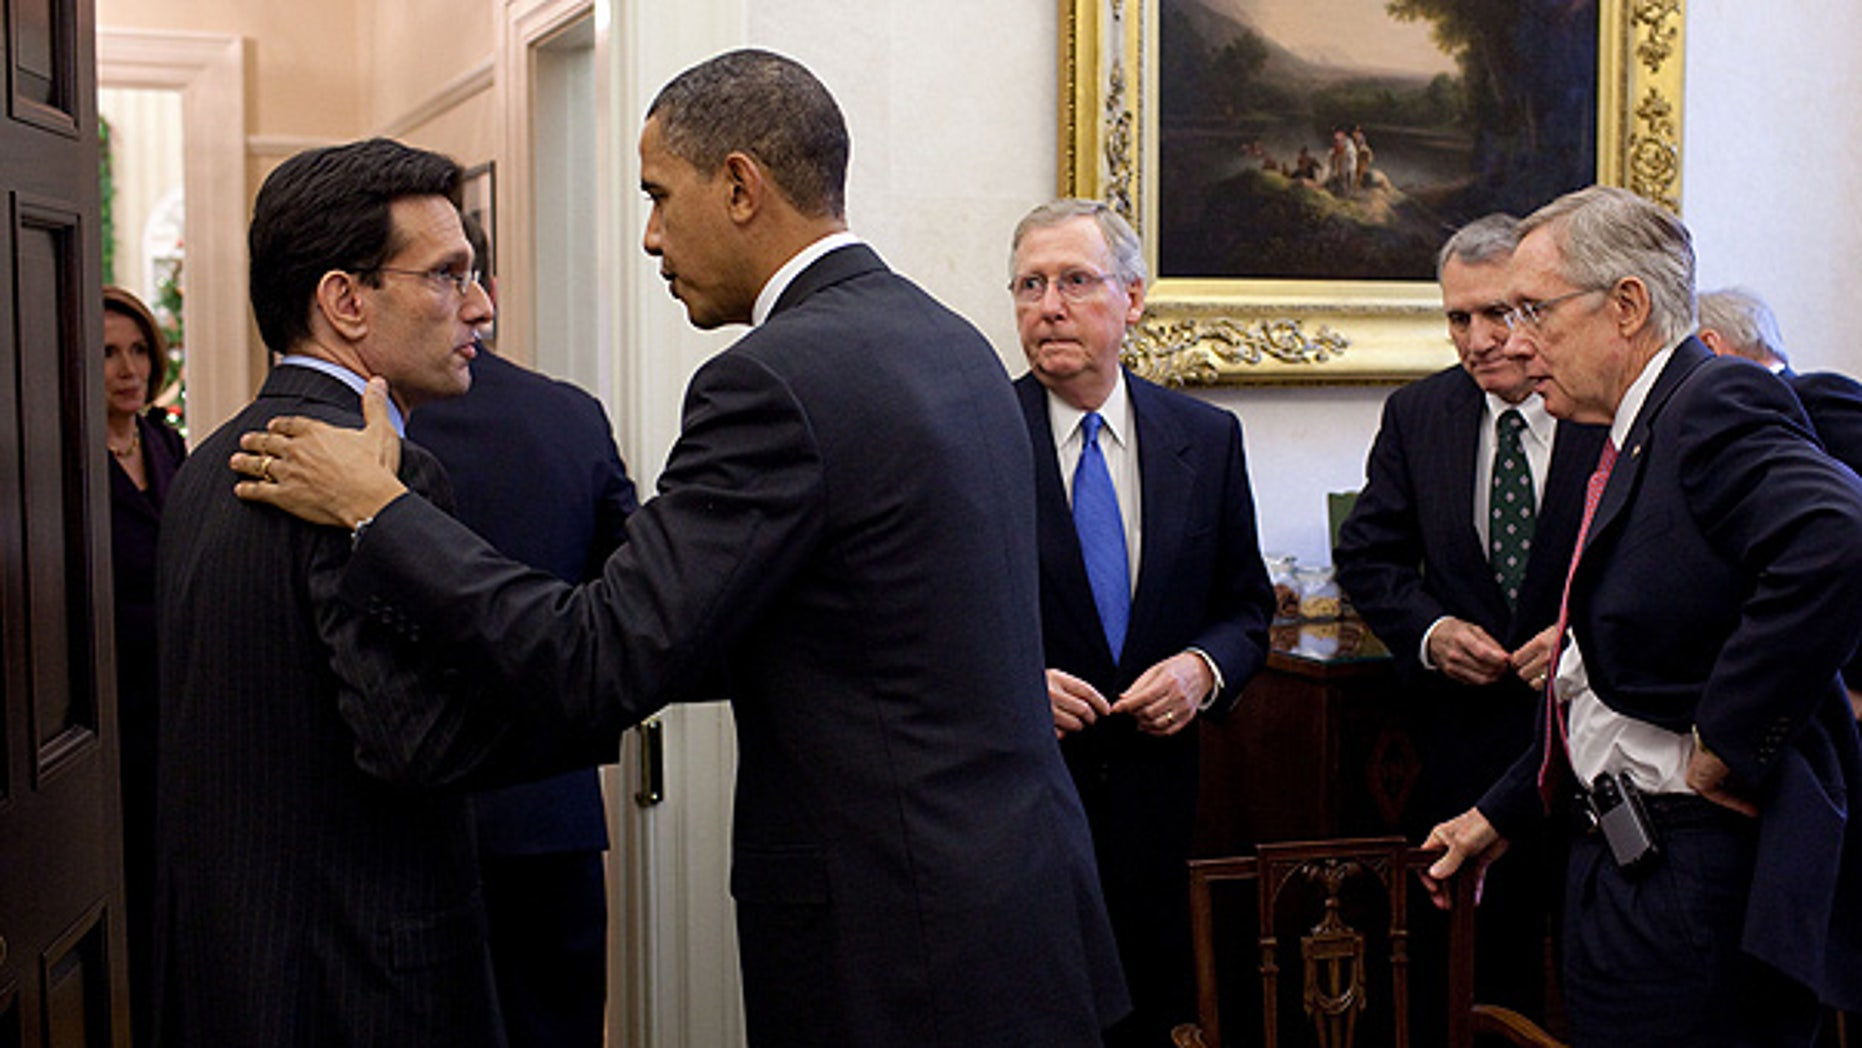 Nov. 30: President Obama talks with Rep. Eric Cantor, R-Va., as Sen. Mitch McConnell, Sen. Jon Kyl and Senate Majority Leader Harry Reid look on at the conclusion of a meeting in the Oval Office Private Dining Room.